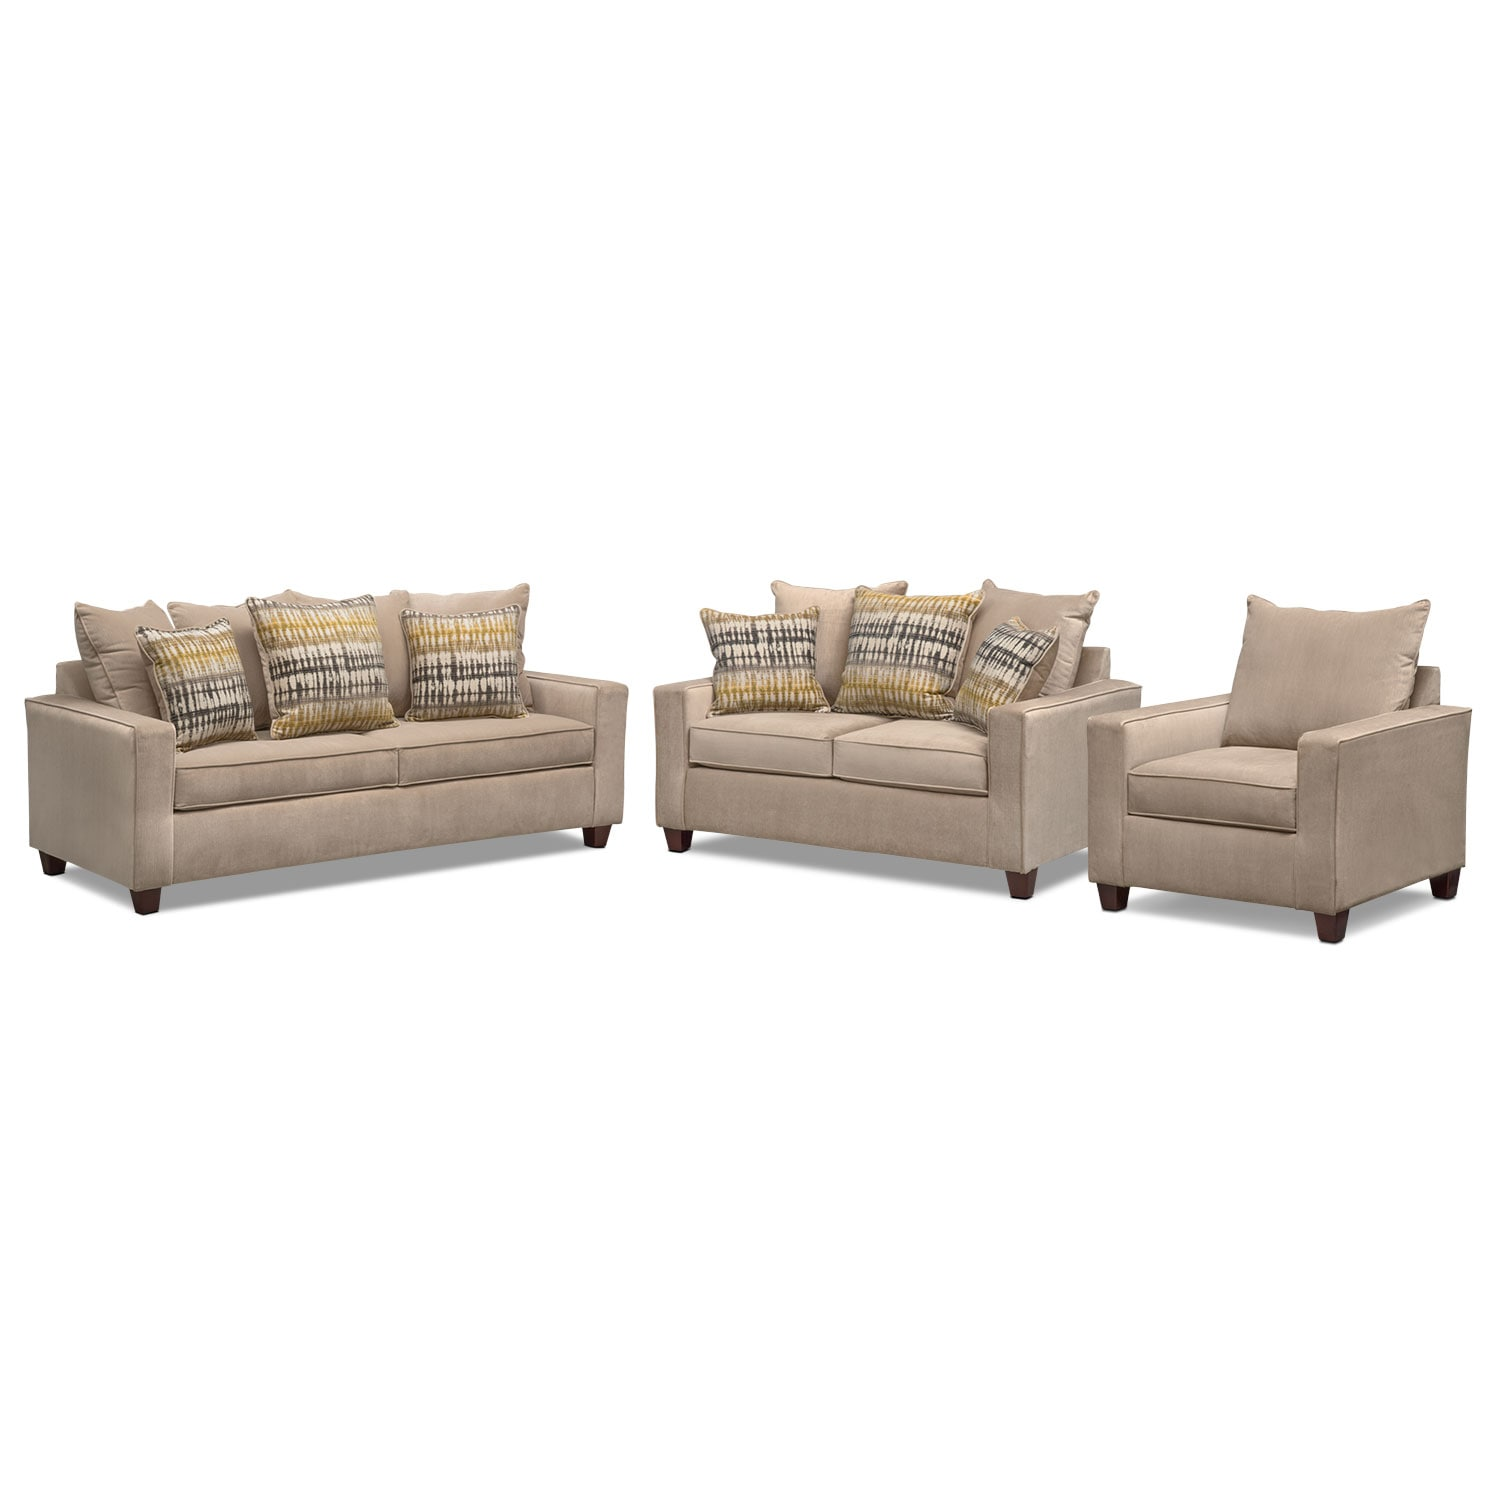 Living Room Furniture - Bryden Queen Memory Foam Sleeper Sofa, Loveseat and Chair Set - Beige